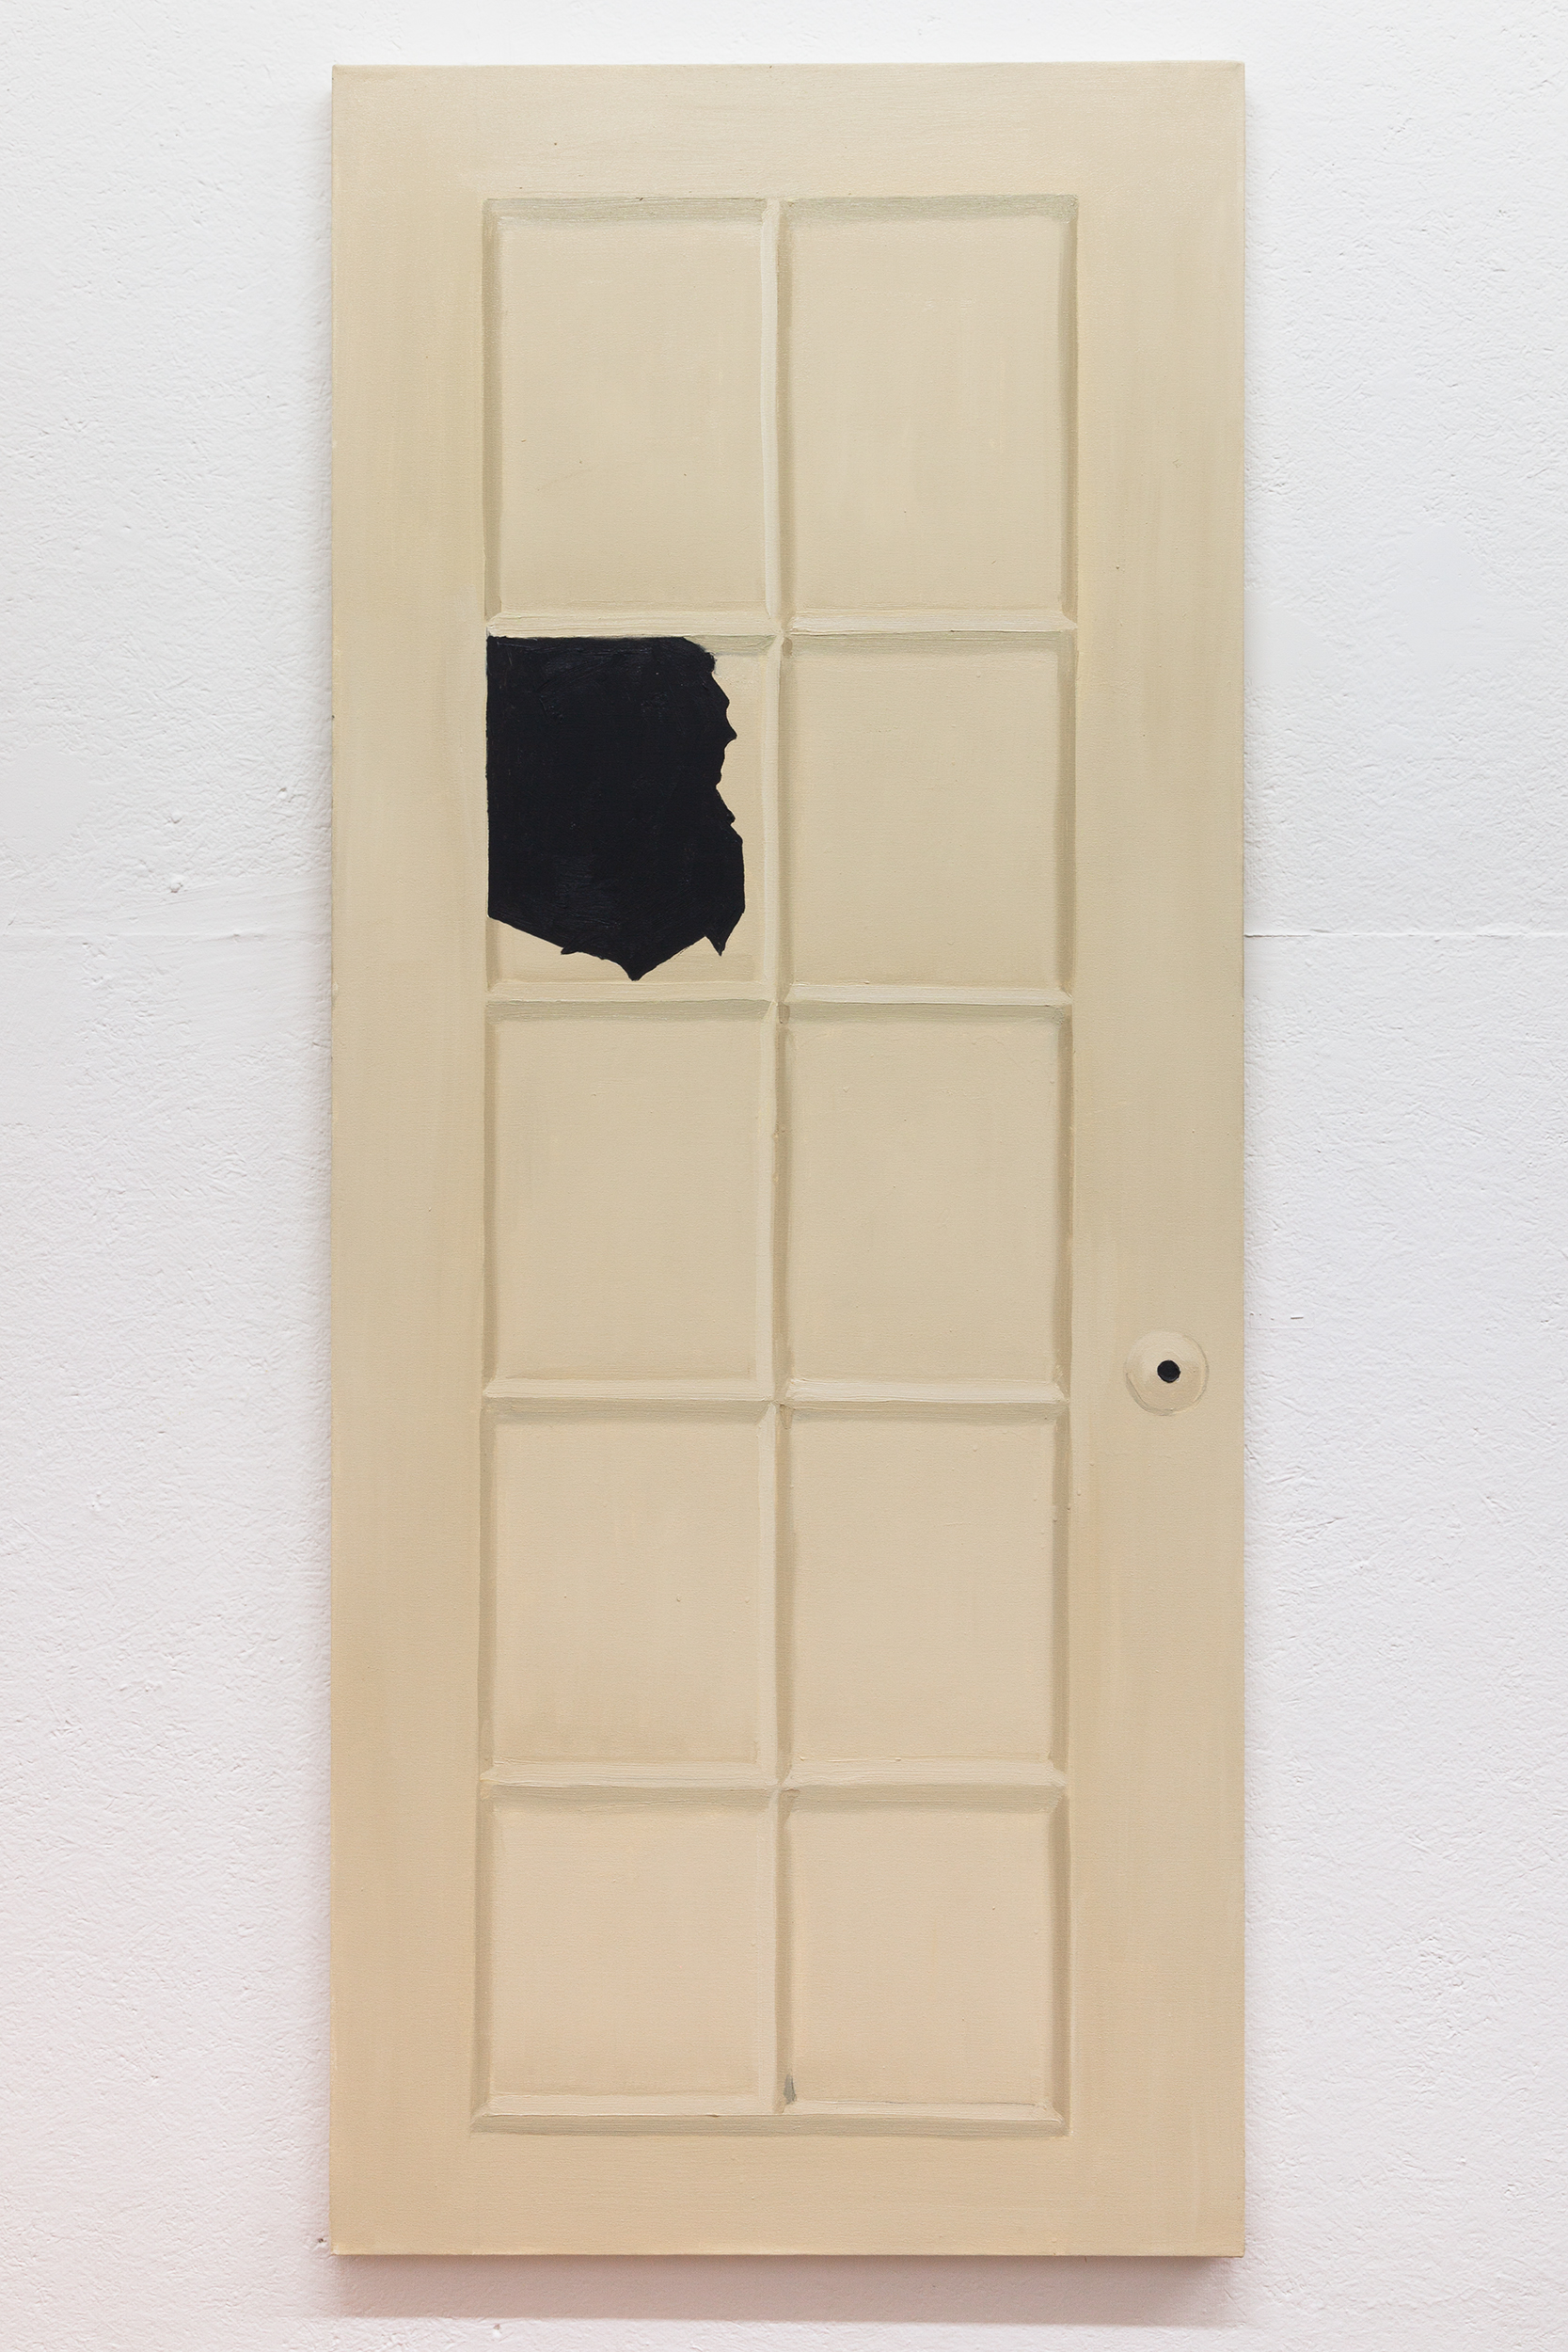 Richard Bosman,  Louise Bourgeois Door , 2016, Oil on canvas, 72 x 30 inches